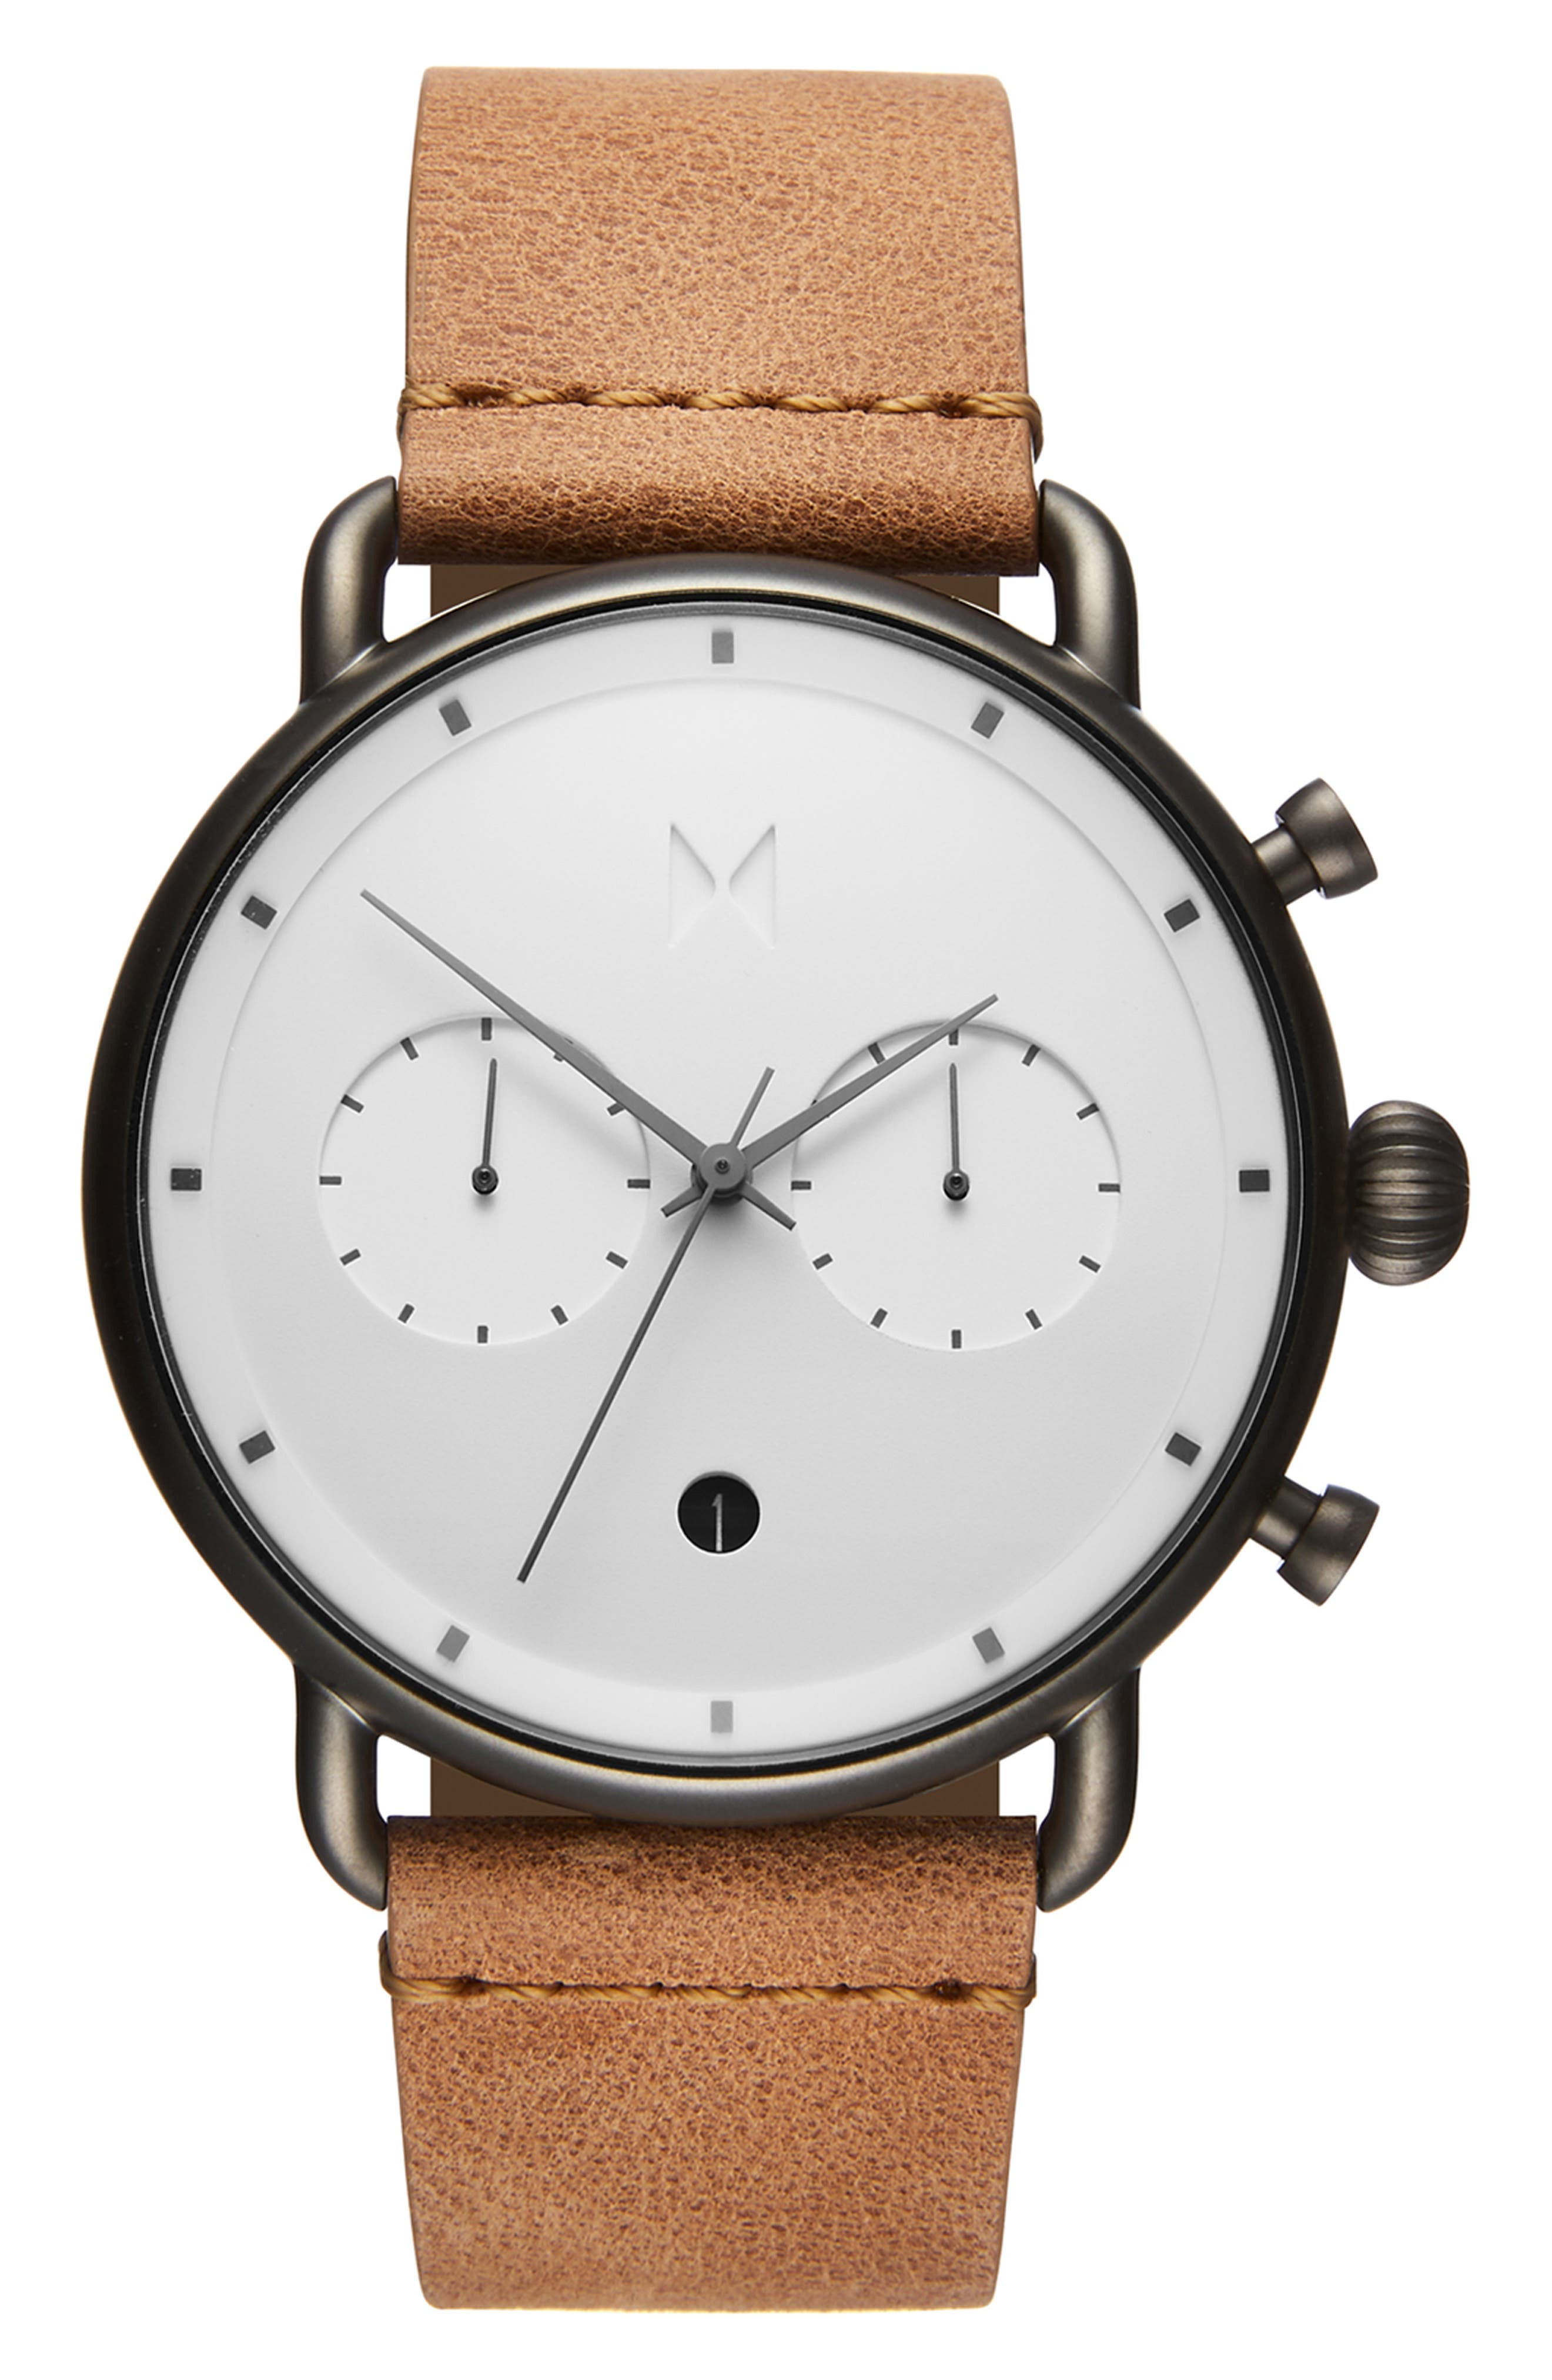 Blacktop Chronograph Leather Strap Watch,                         Main,                         color, WHITE/ CARAMEL